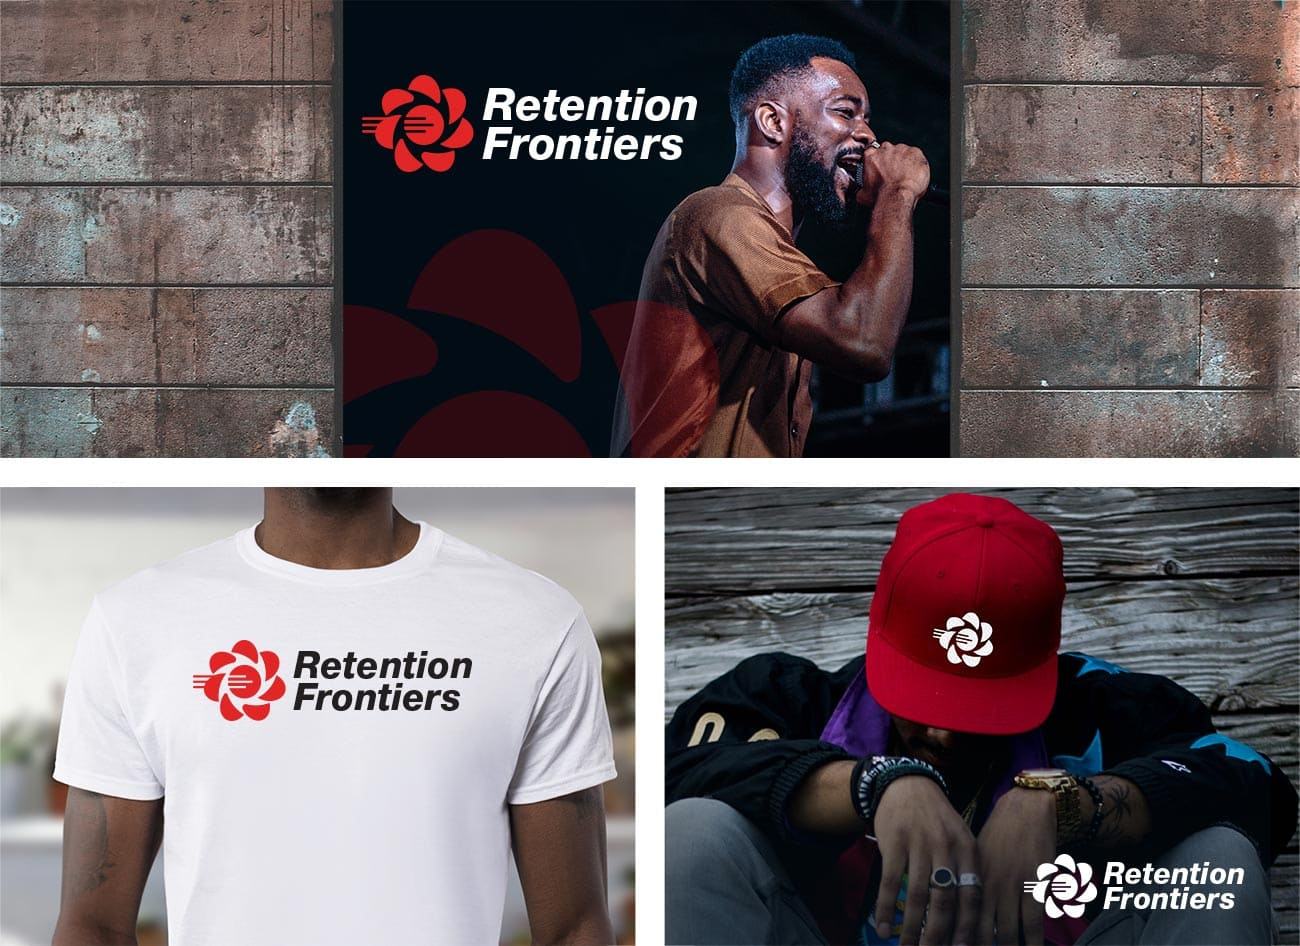 Retention Frontiers